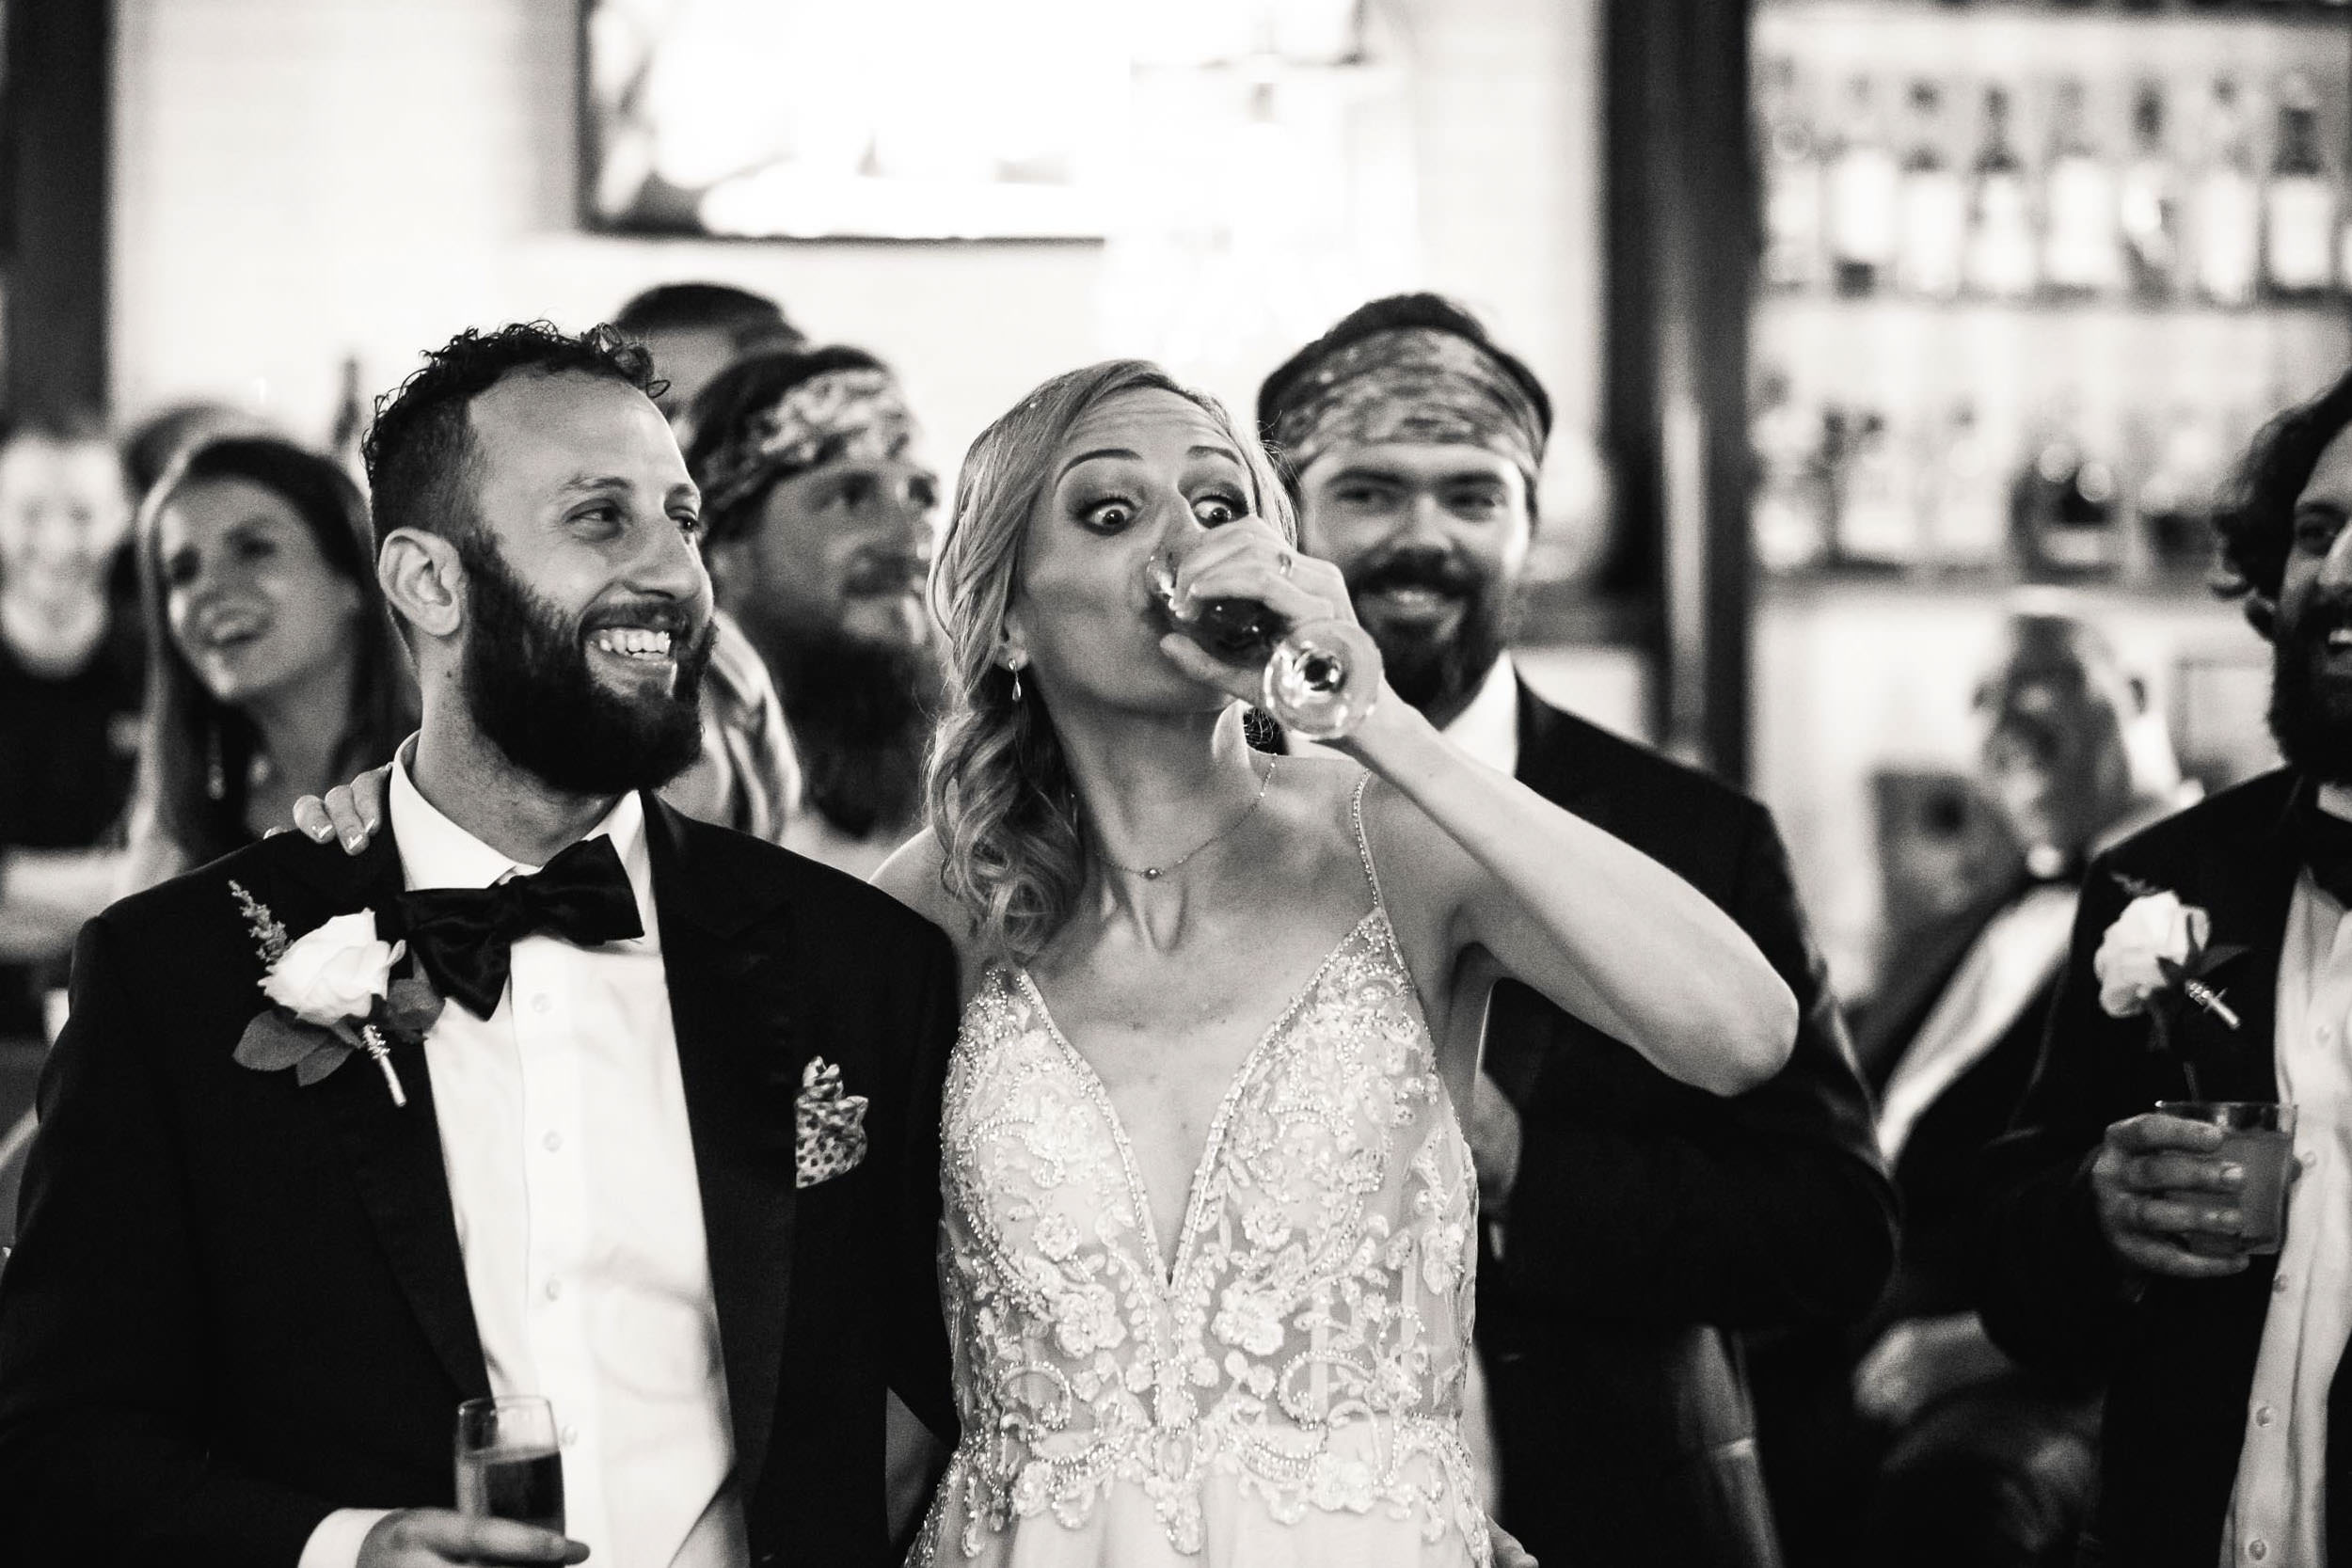 bride-reacting-wedding-speak-while-drinking.jpg